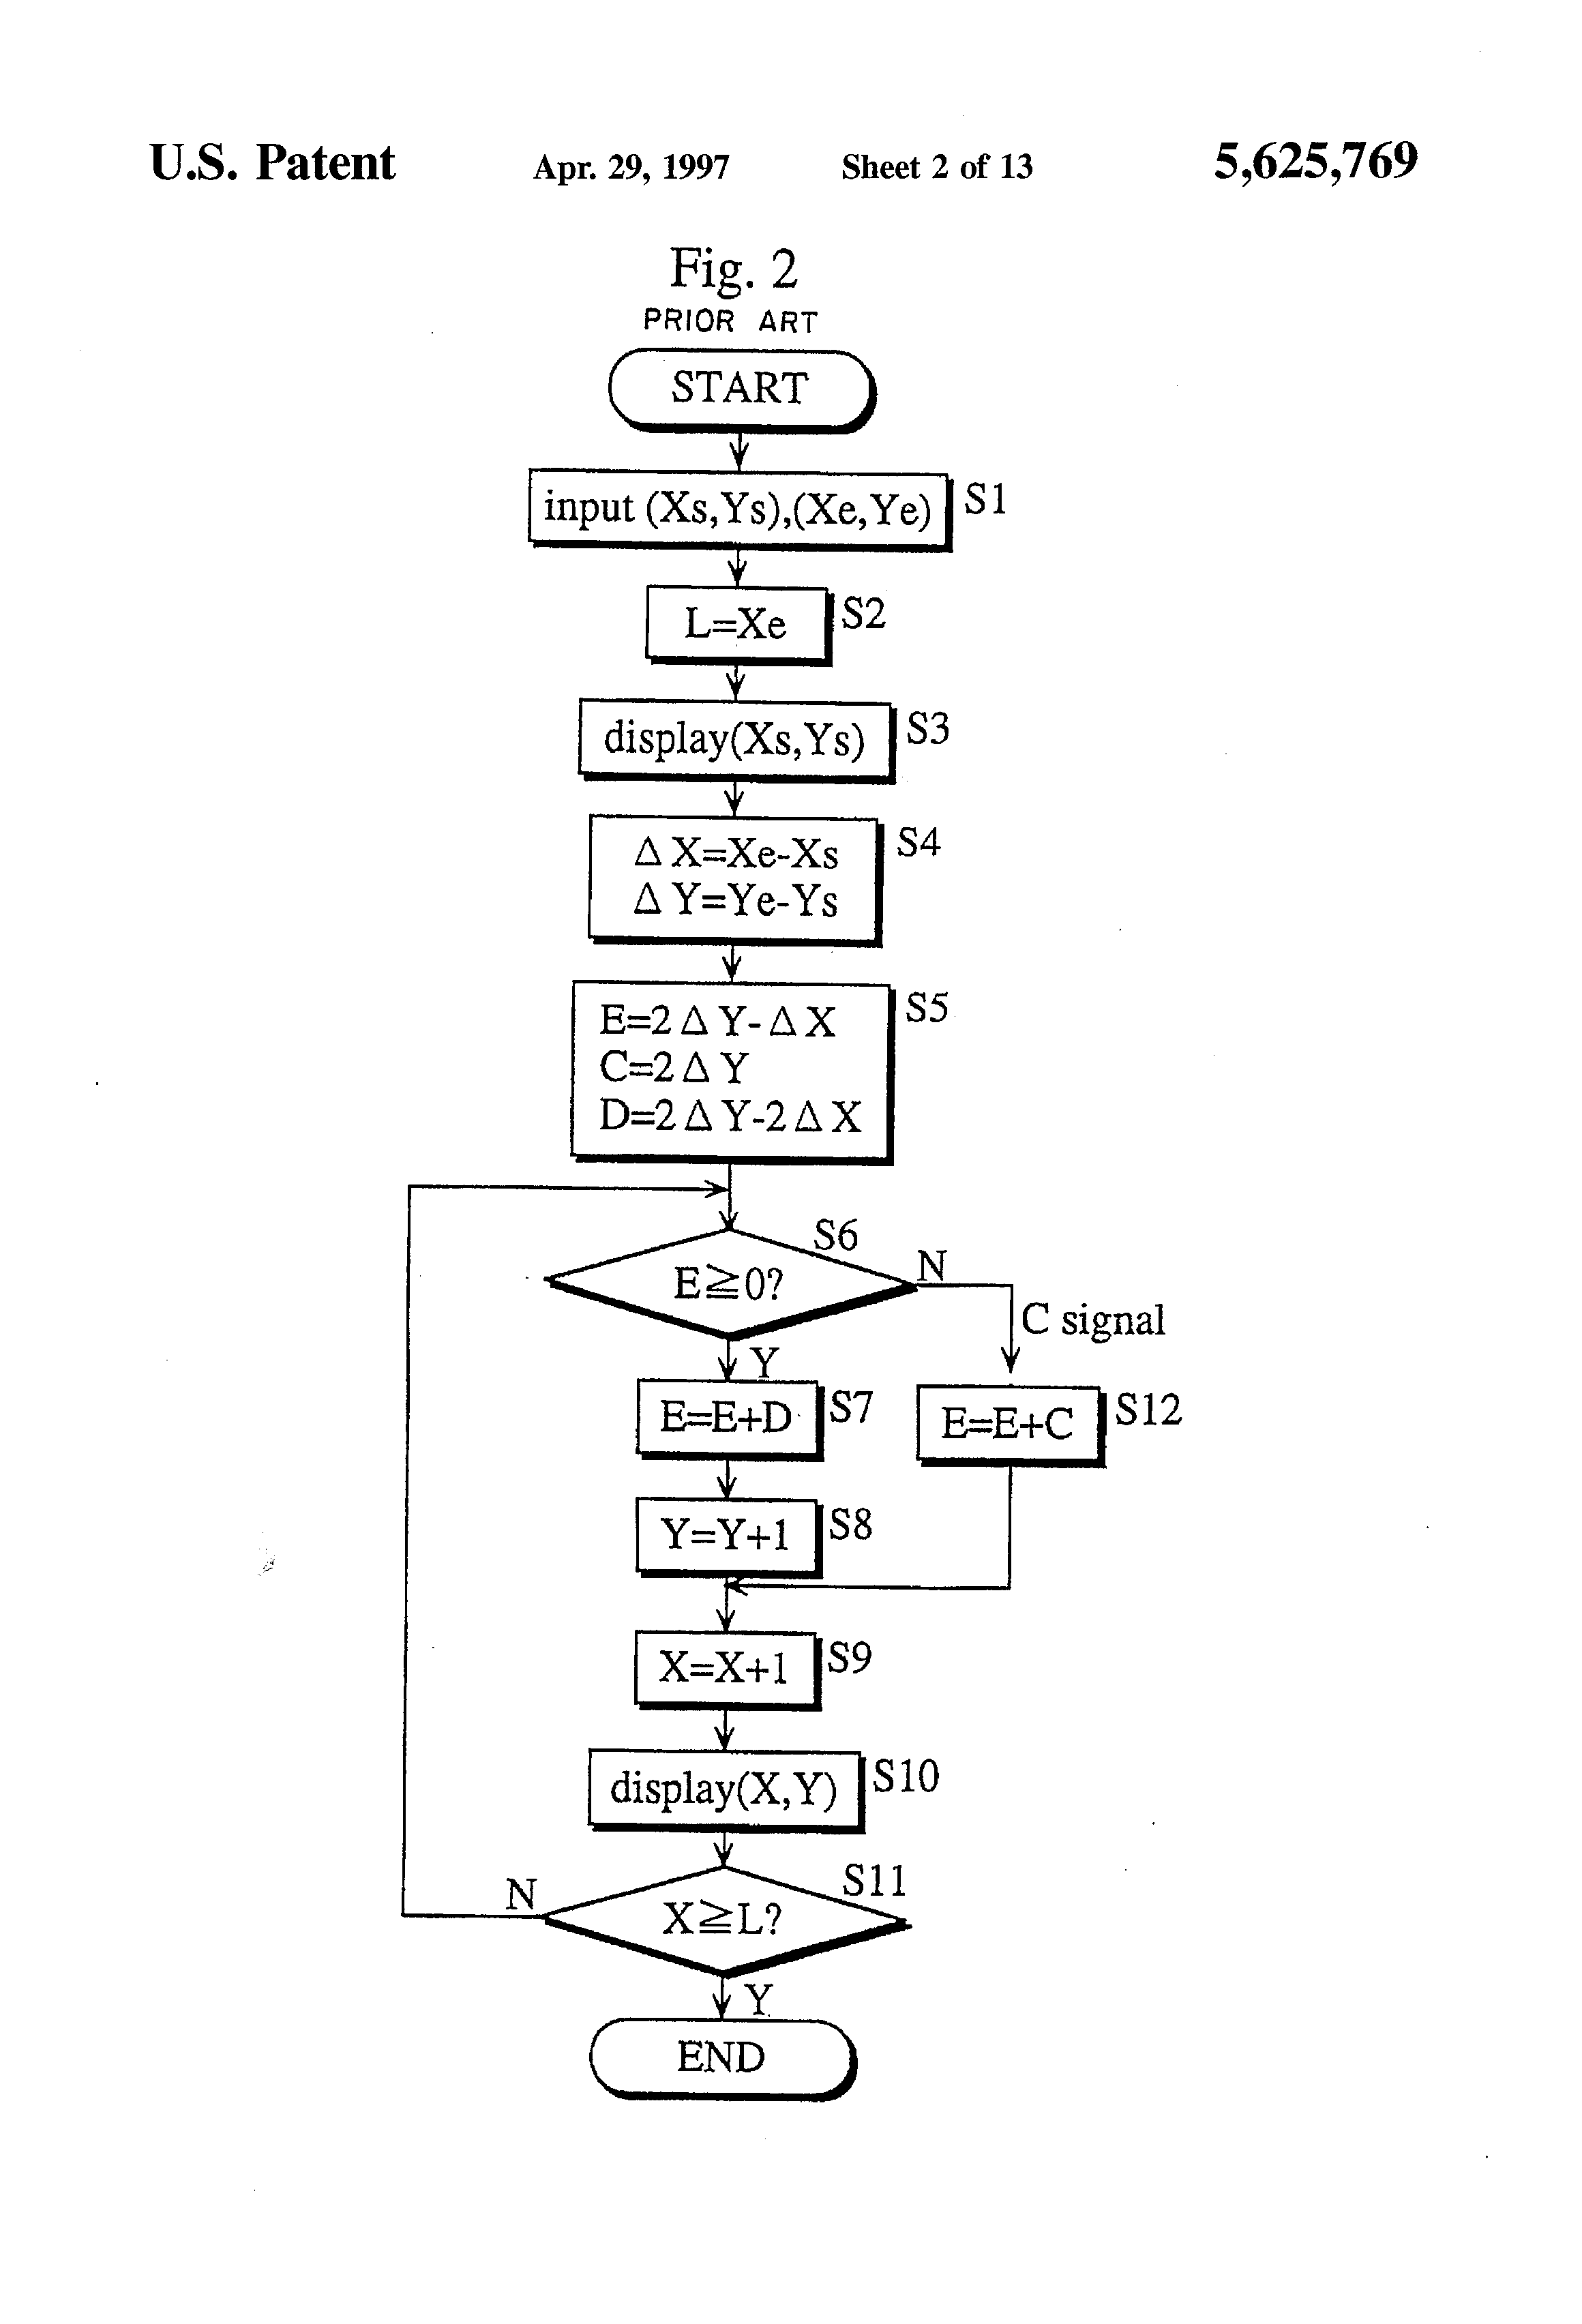 Bresenham Line Drawing Algorithm Steps : Patent us apparatus for and method of generating